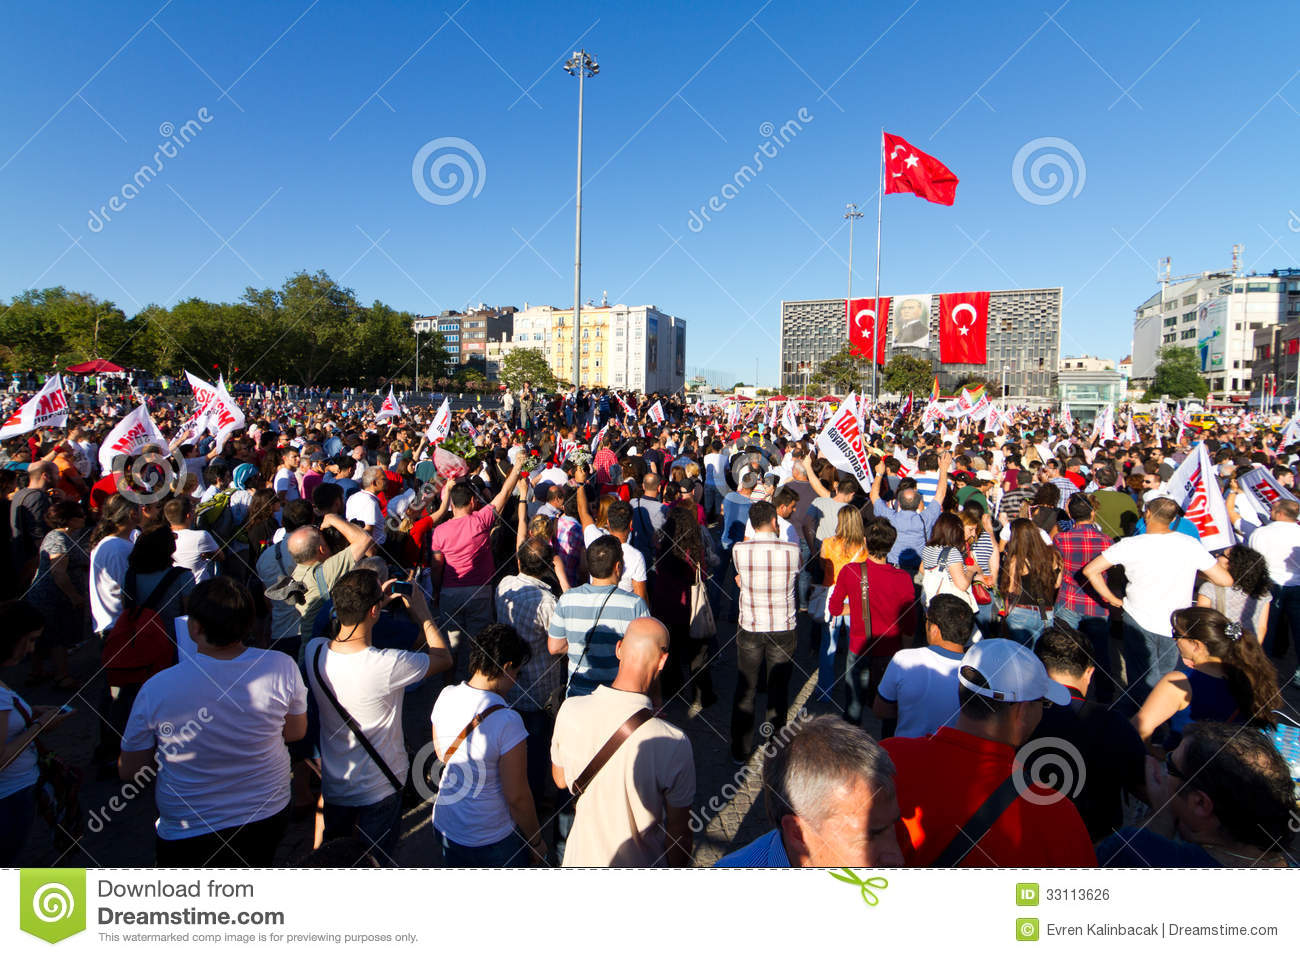 Turkey anti-emergency protests draw government criticism